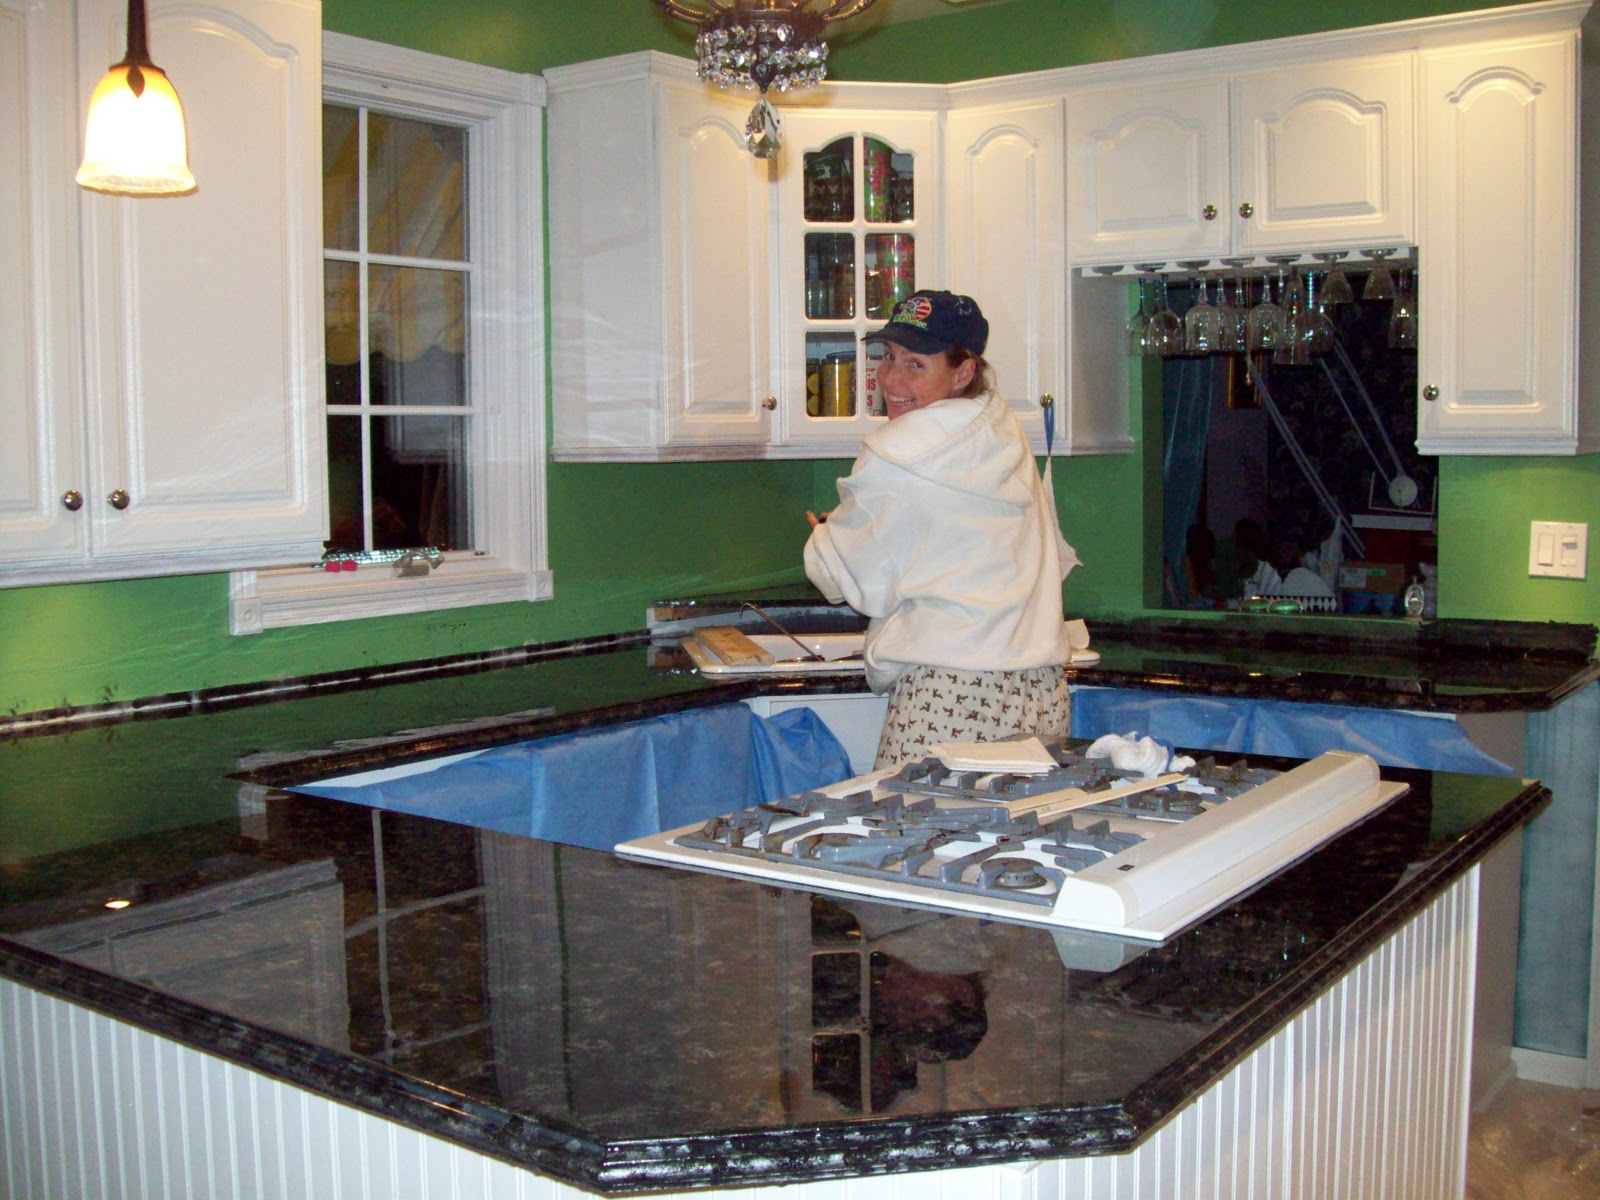 Painted countertops to look like granite - Painted Countertops To Look Like Granite 20